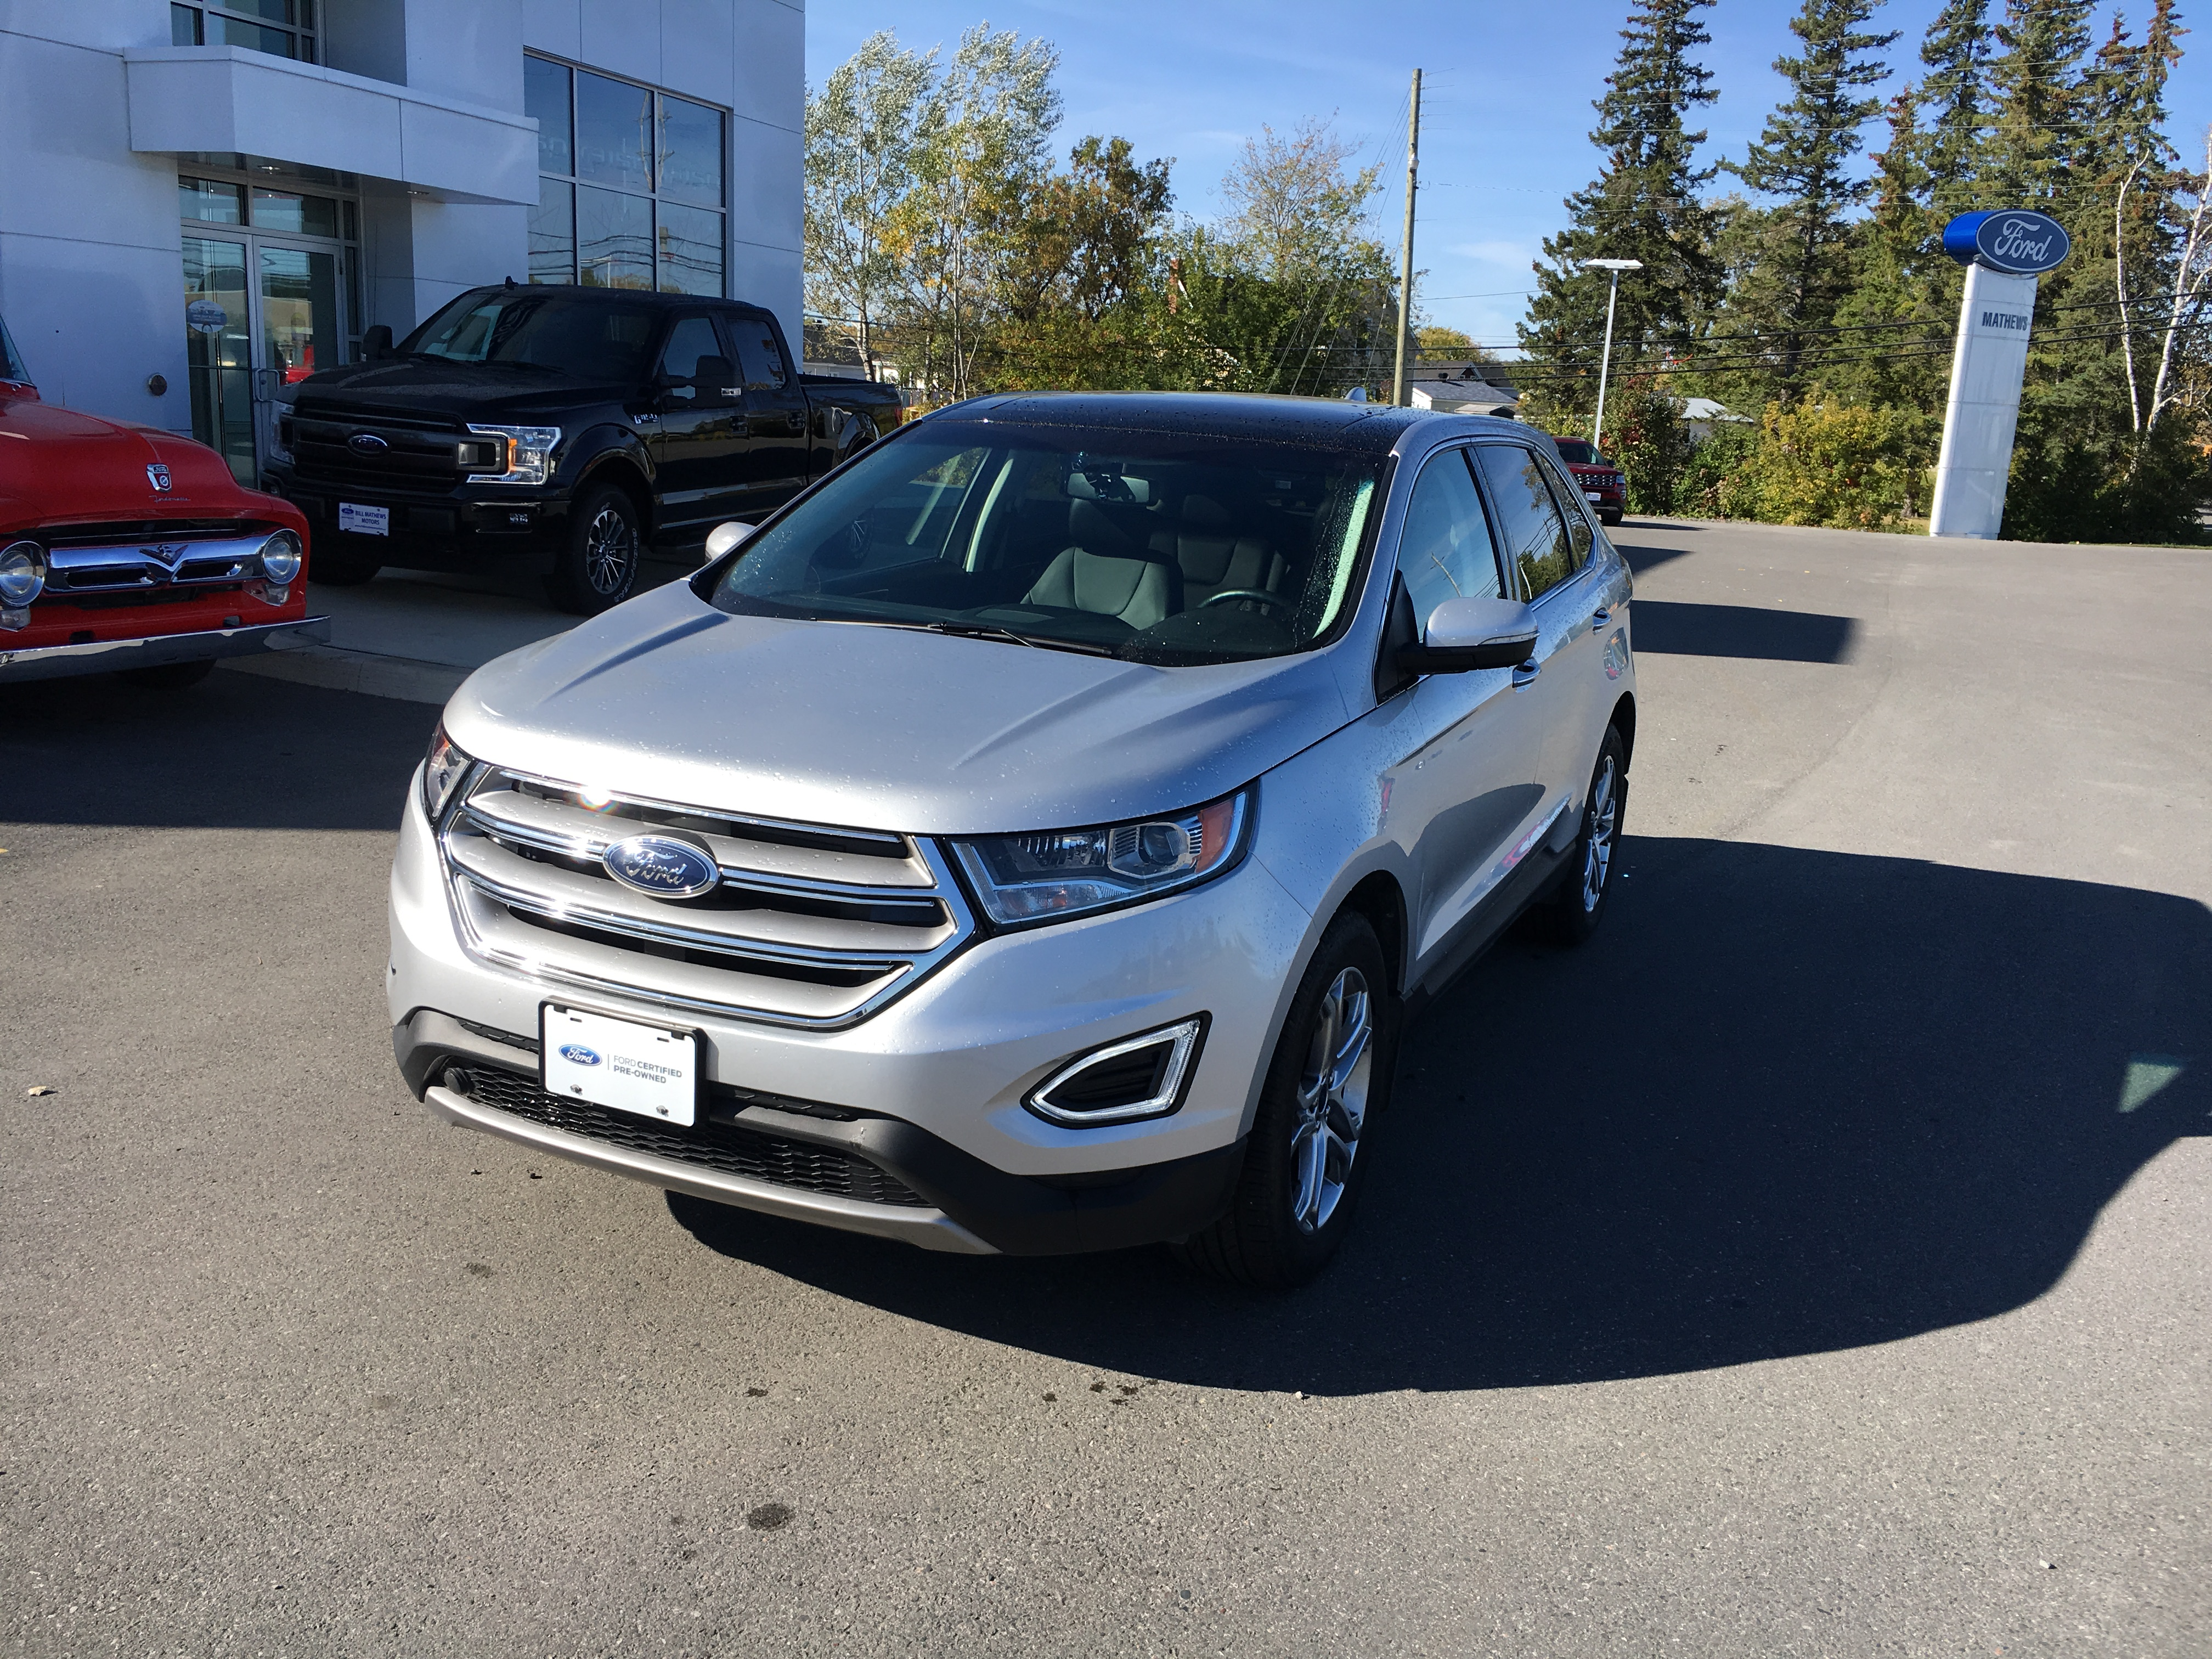 near dealer bc pause previous ford me next serving richmond dealership cam